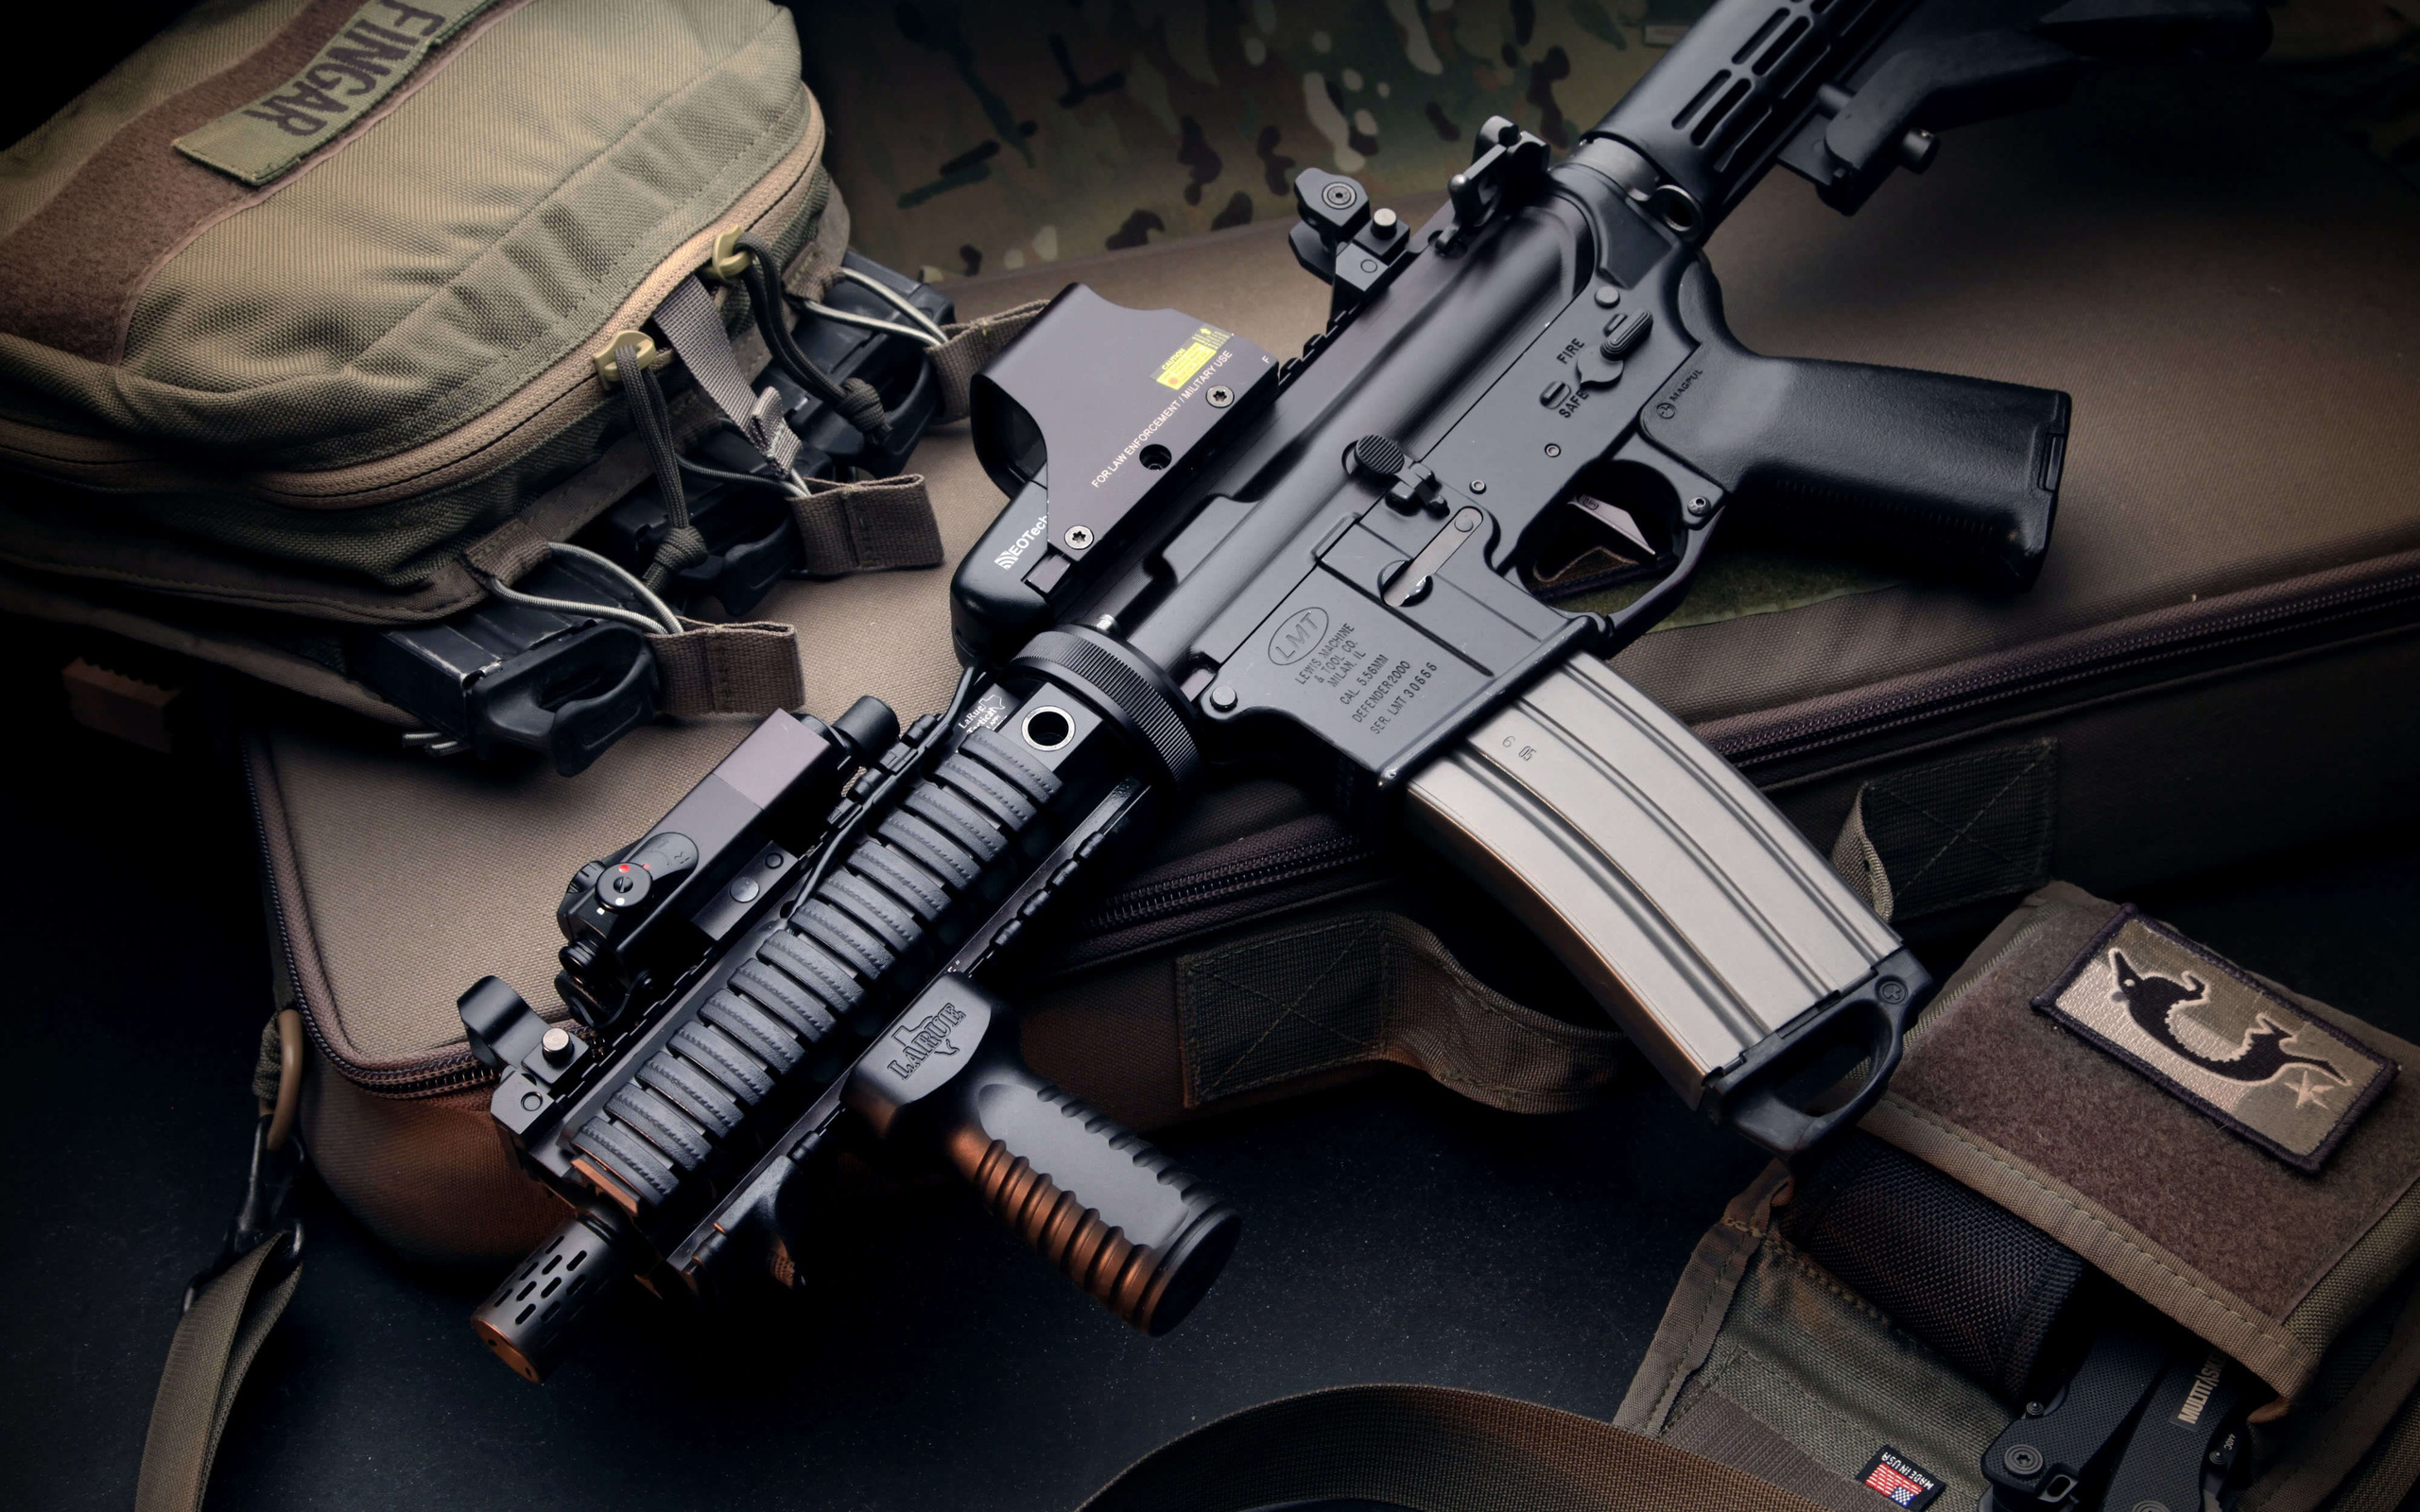 magpul collimator m4 machine gun military police wallpaper background 2560x1600